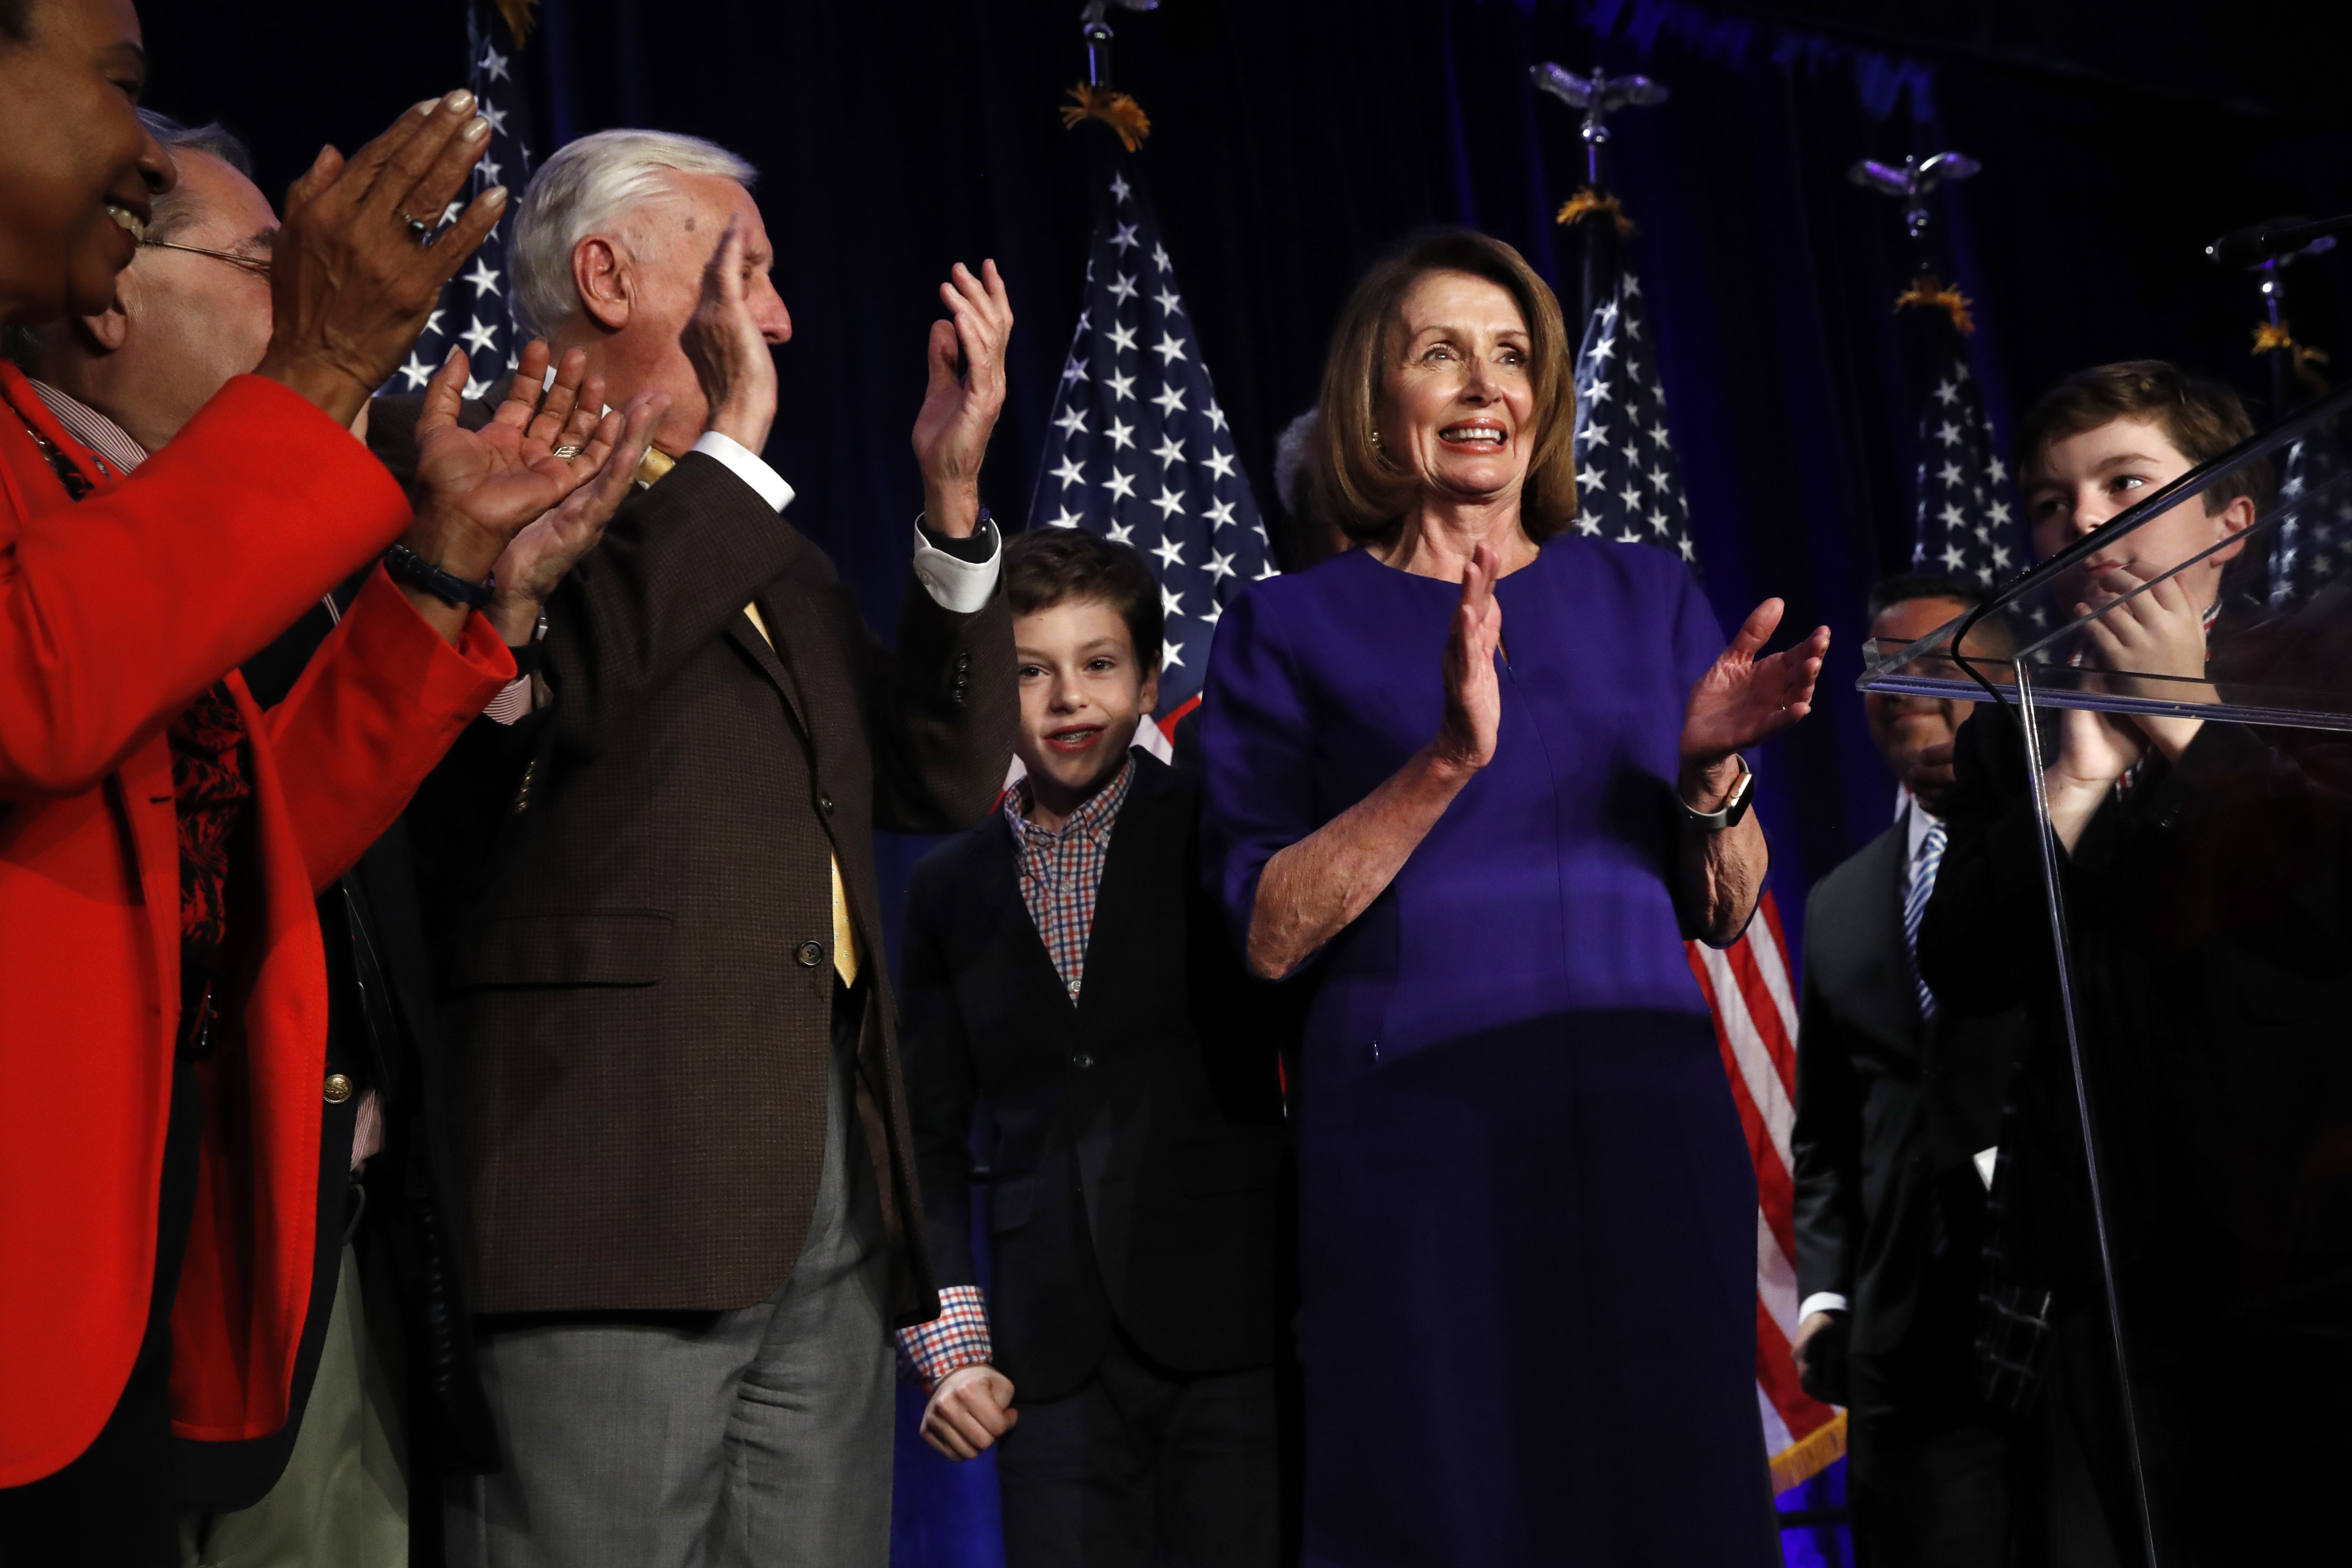 House Democratic Leader Nancy Pelosi on stage after speaking about Democratic wins in the House of Representatives to a crowd of supporters on Tuesday in Washington.